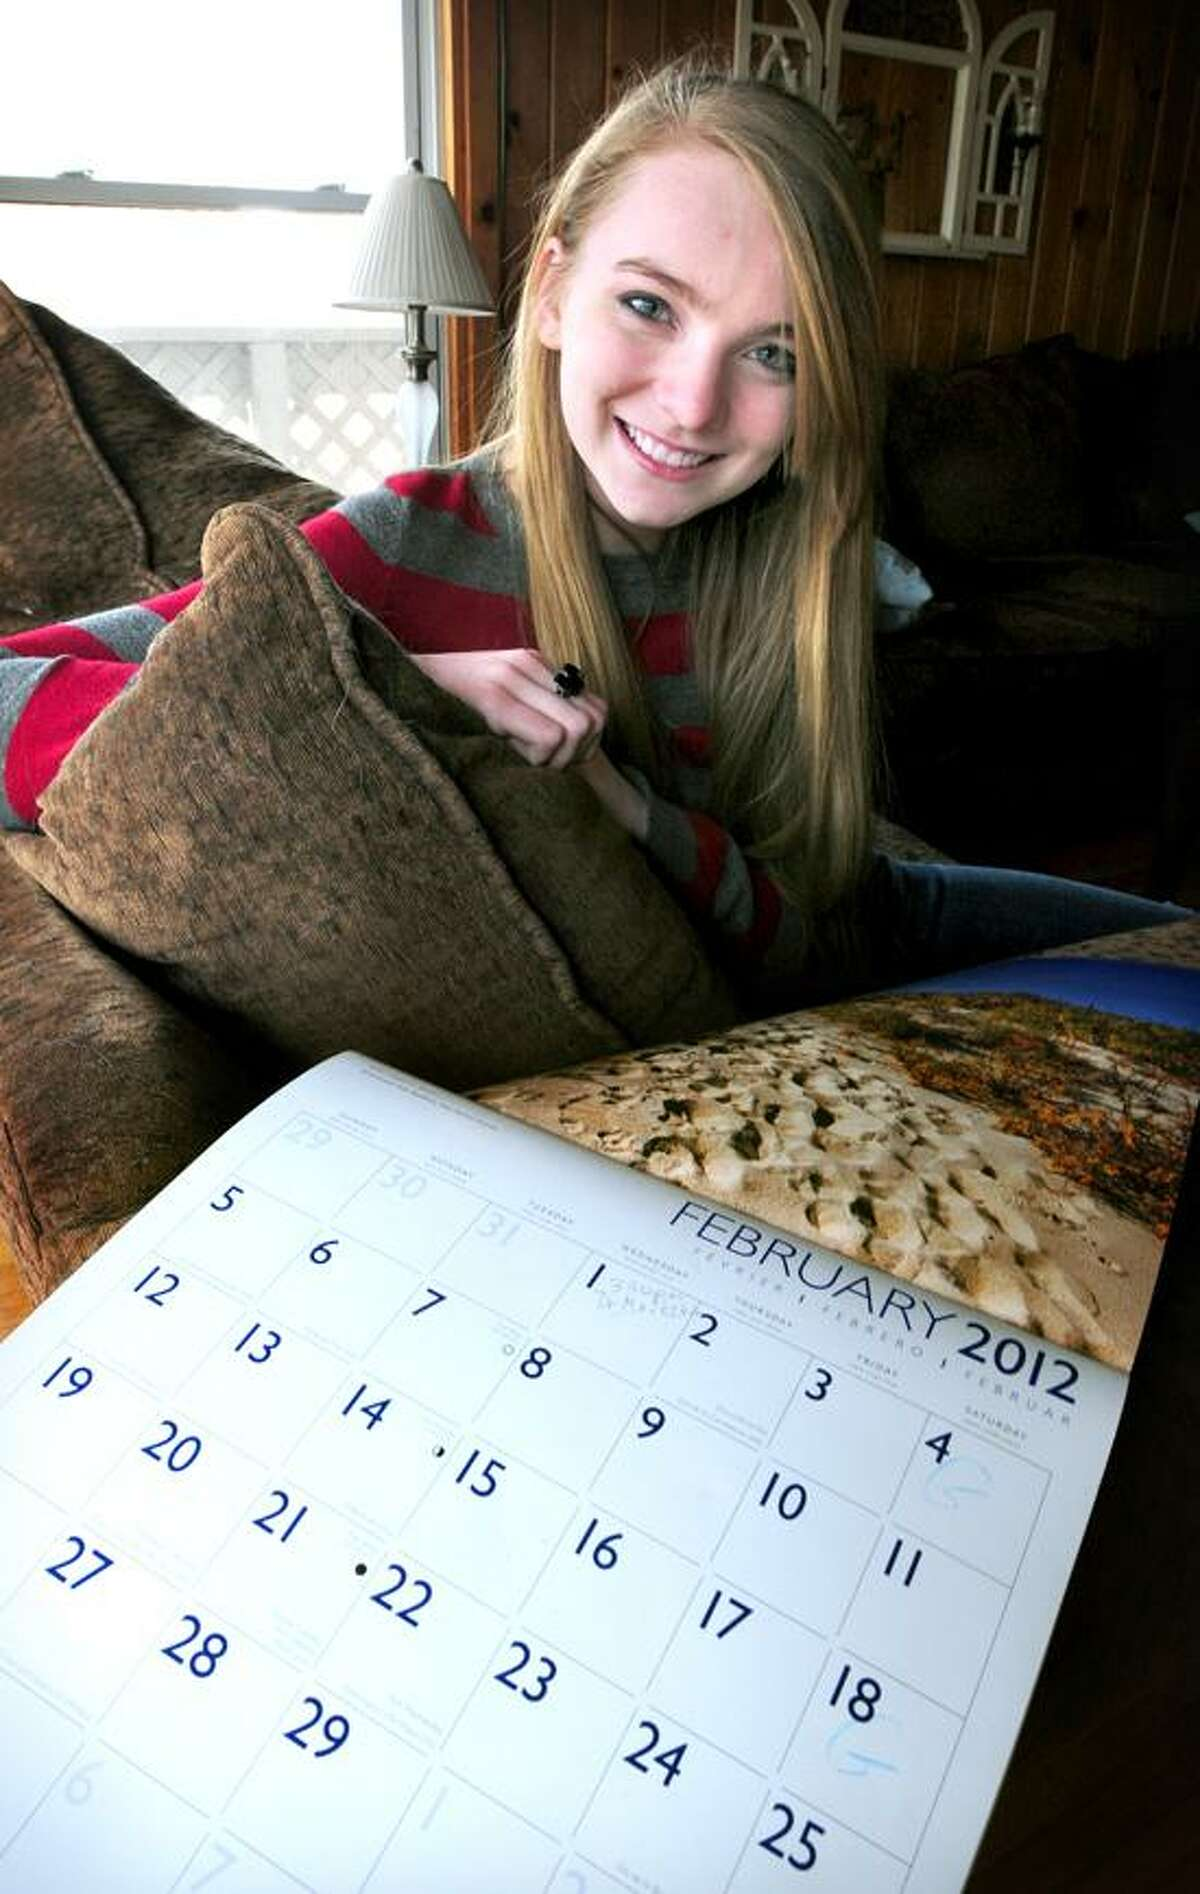 Emily Thibodeau, whose birthday is on February 29th, is photographed at her home in Clinton on 2/27/2012.Photo by Arnold Gold/New Haven Register AG0441B